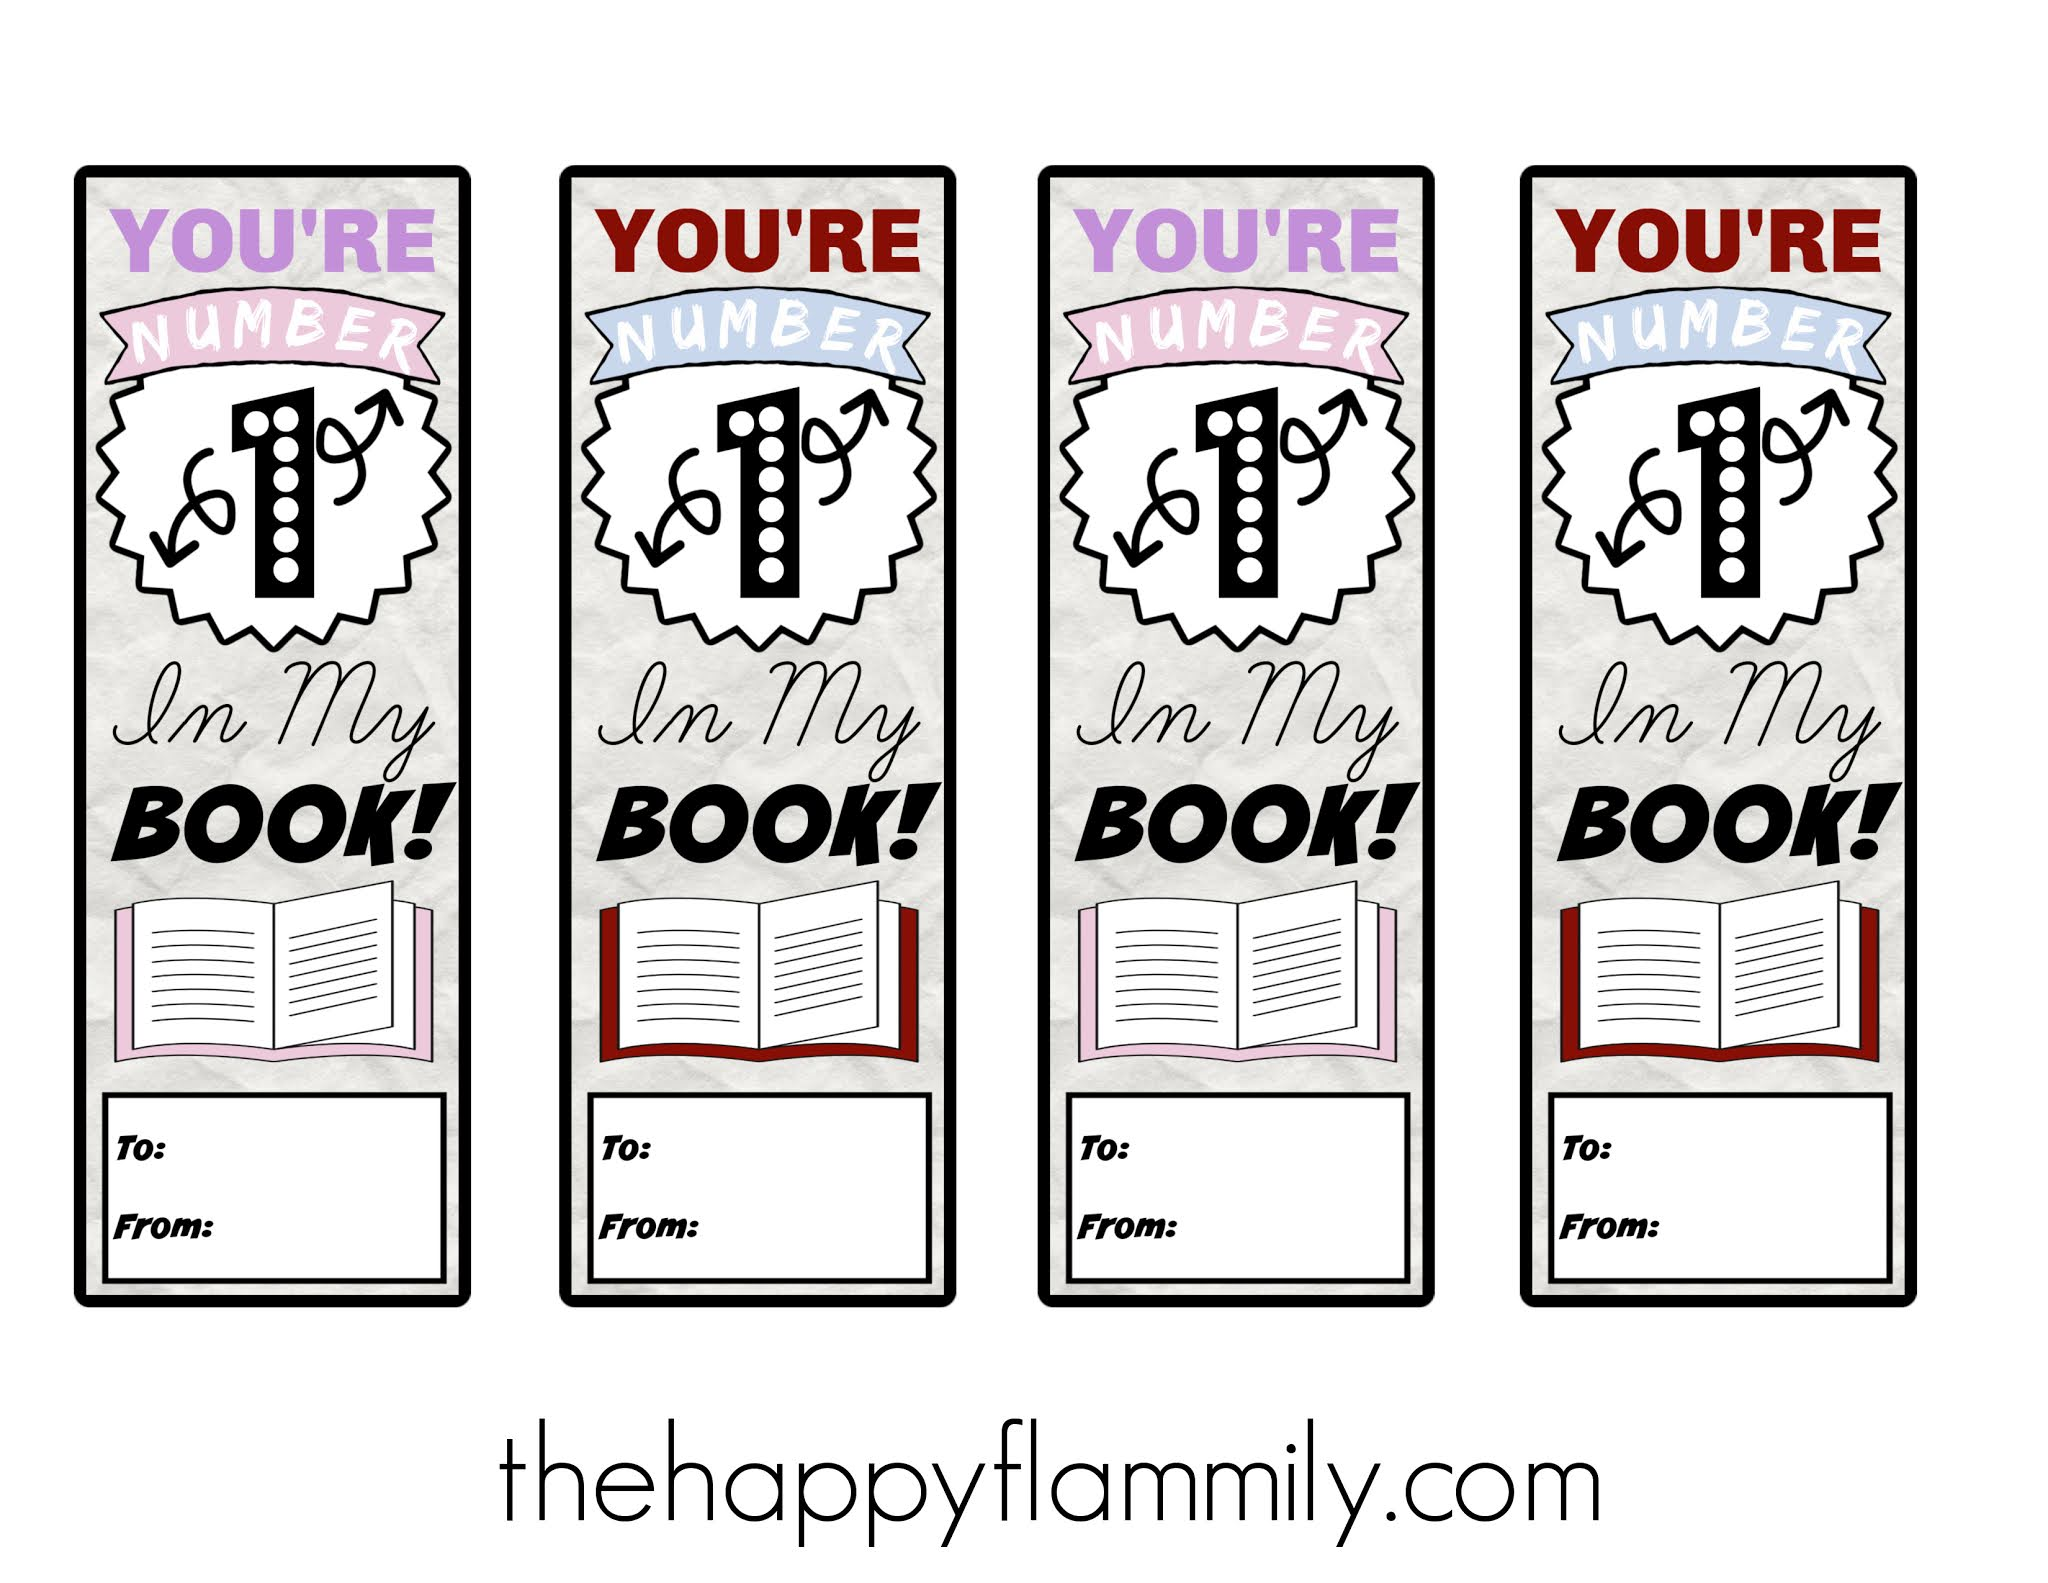 Valentine's Day printable bookmarks. Free printable bookmarks. Valentine bookmarks. How to make valentine bookmarks. Homemade valentine bookmarks. Free printable cute bookmarks. #valentines #Books #bookmarks #valentinesday #valentinescards #school #class #education